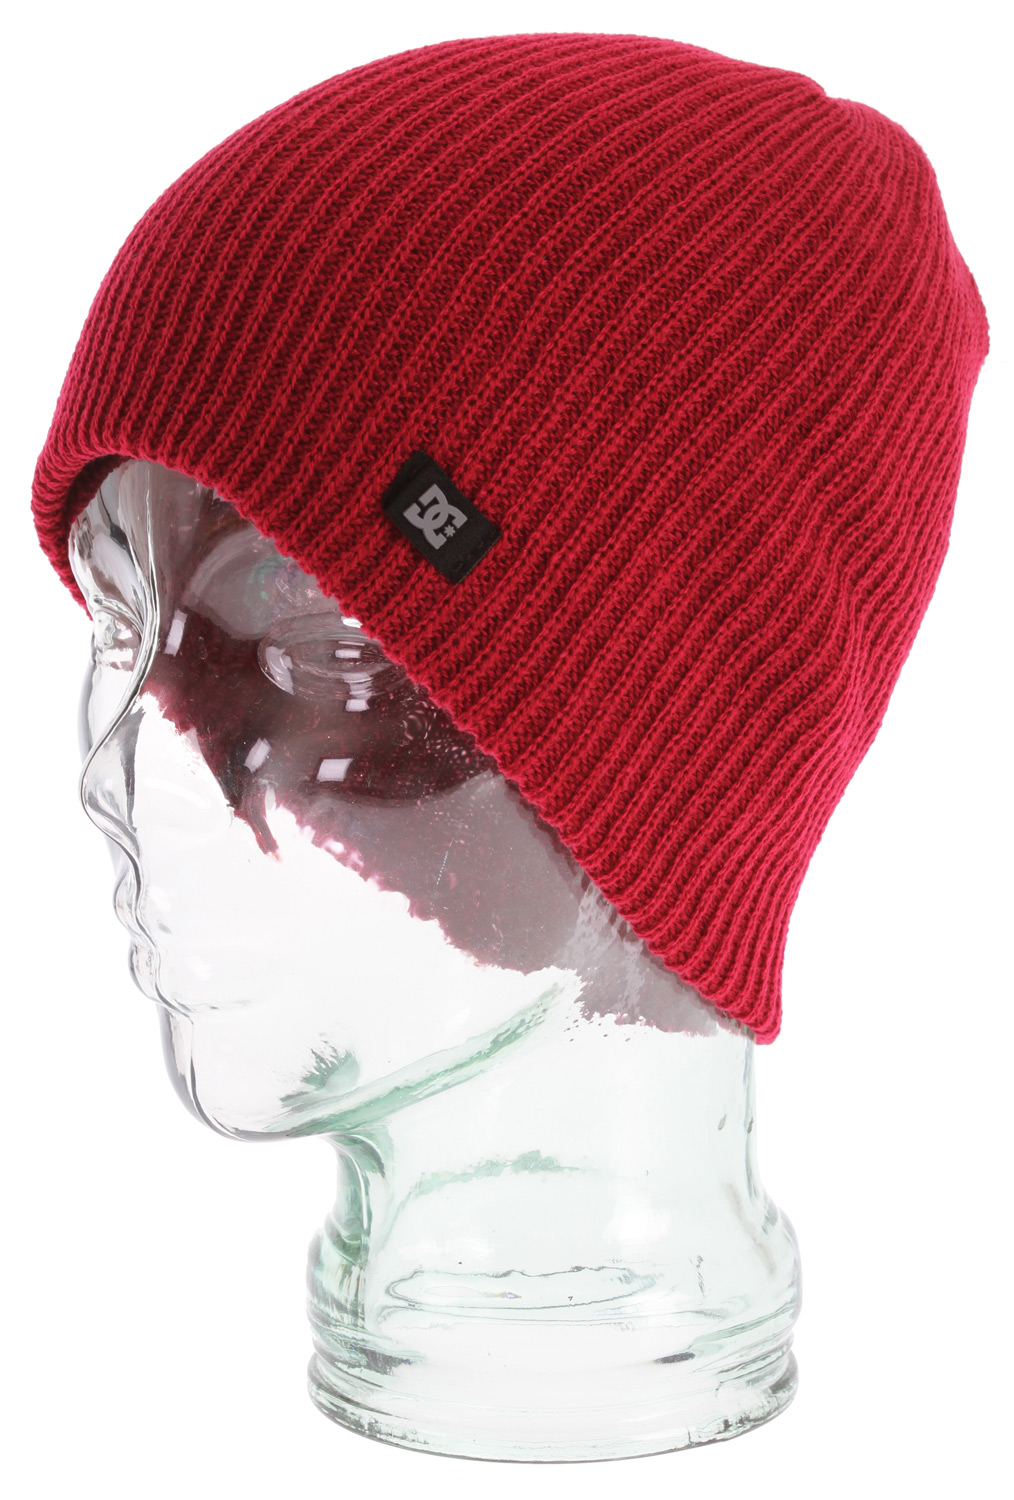 Fitness Standard fit beanie. 100% acrylicKey Features of the DC Yepito Beanie: Standard fit beanie 100% acrylic - $9.95